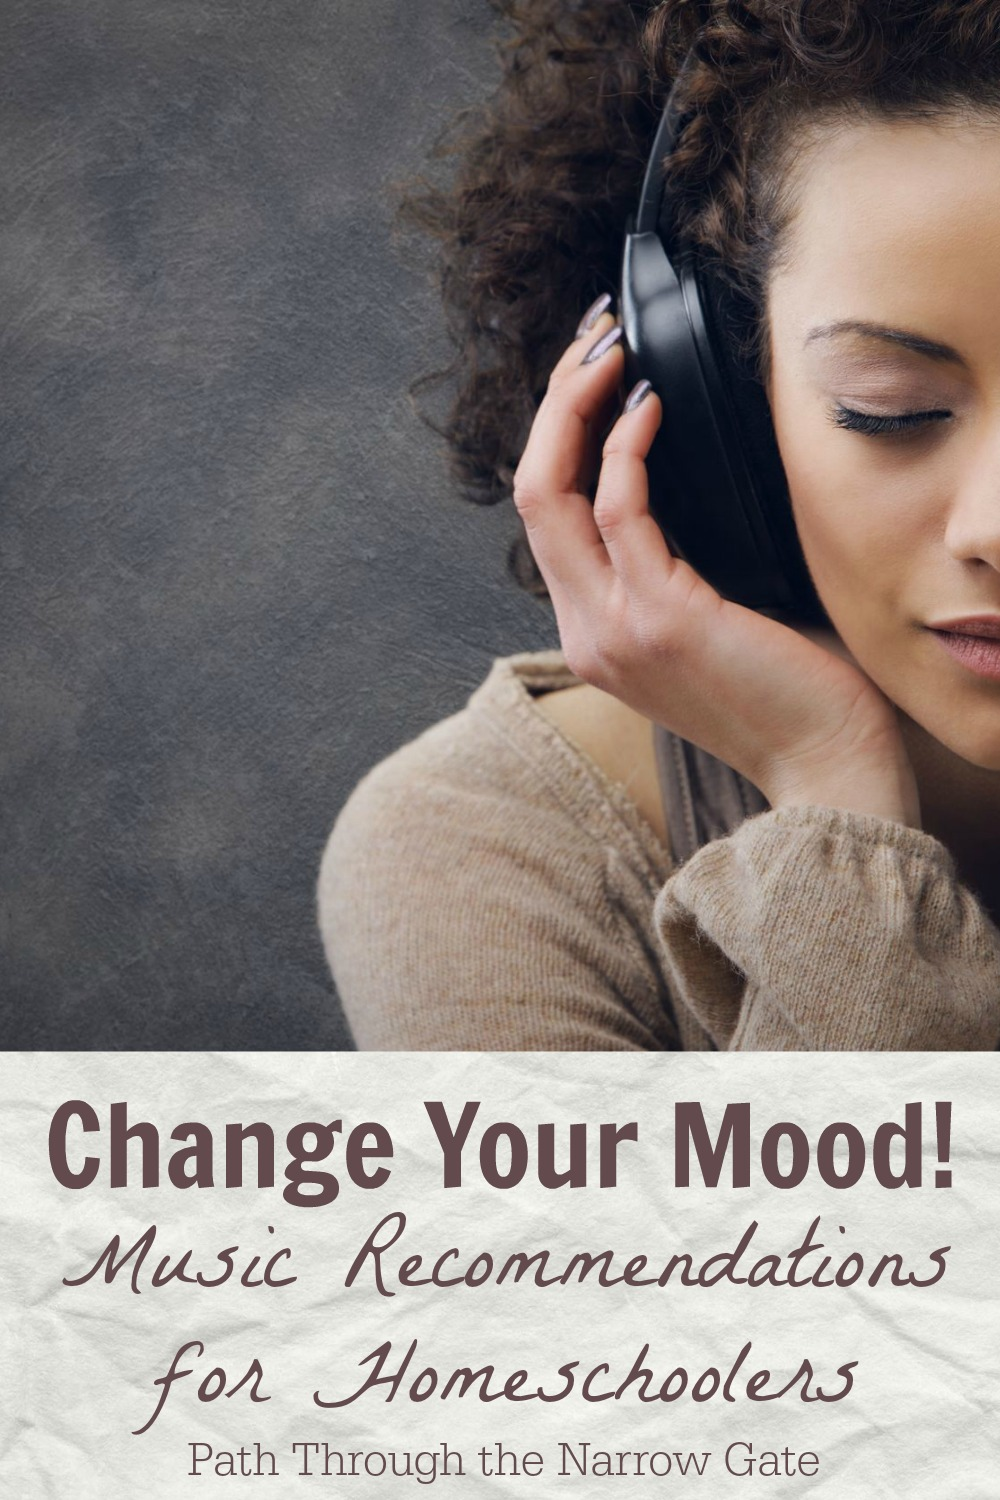 Try instantly changing the mood in your home by playing some happy music for homeschoolers! These 21 Songs are sure to lift your spirits.